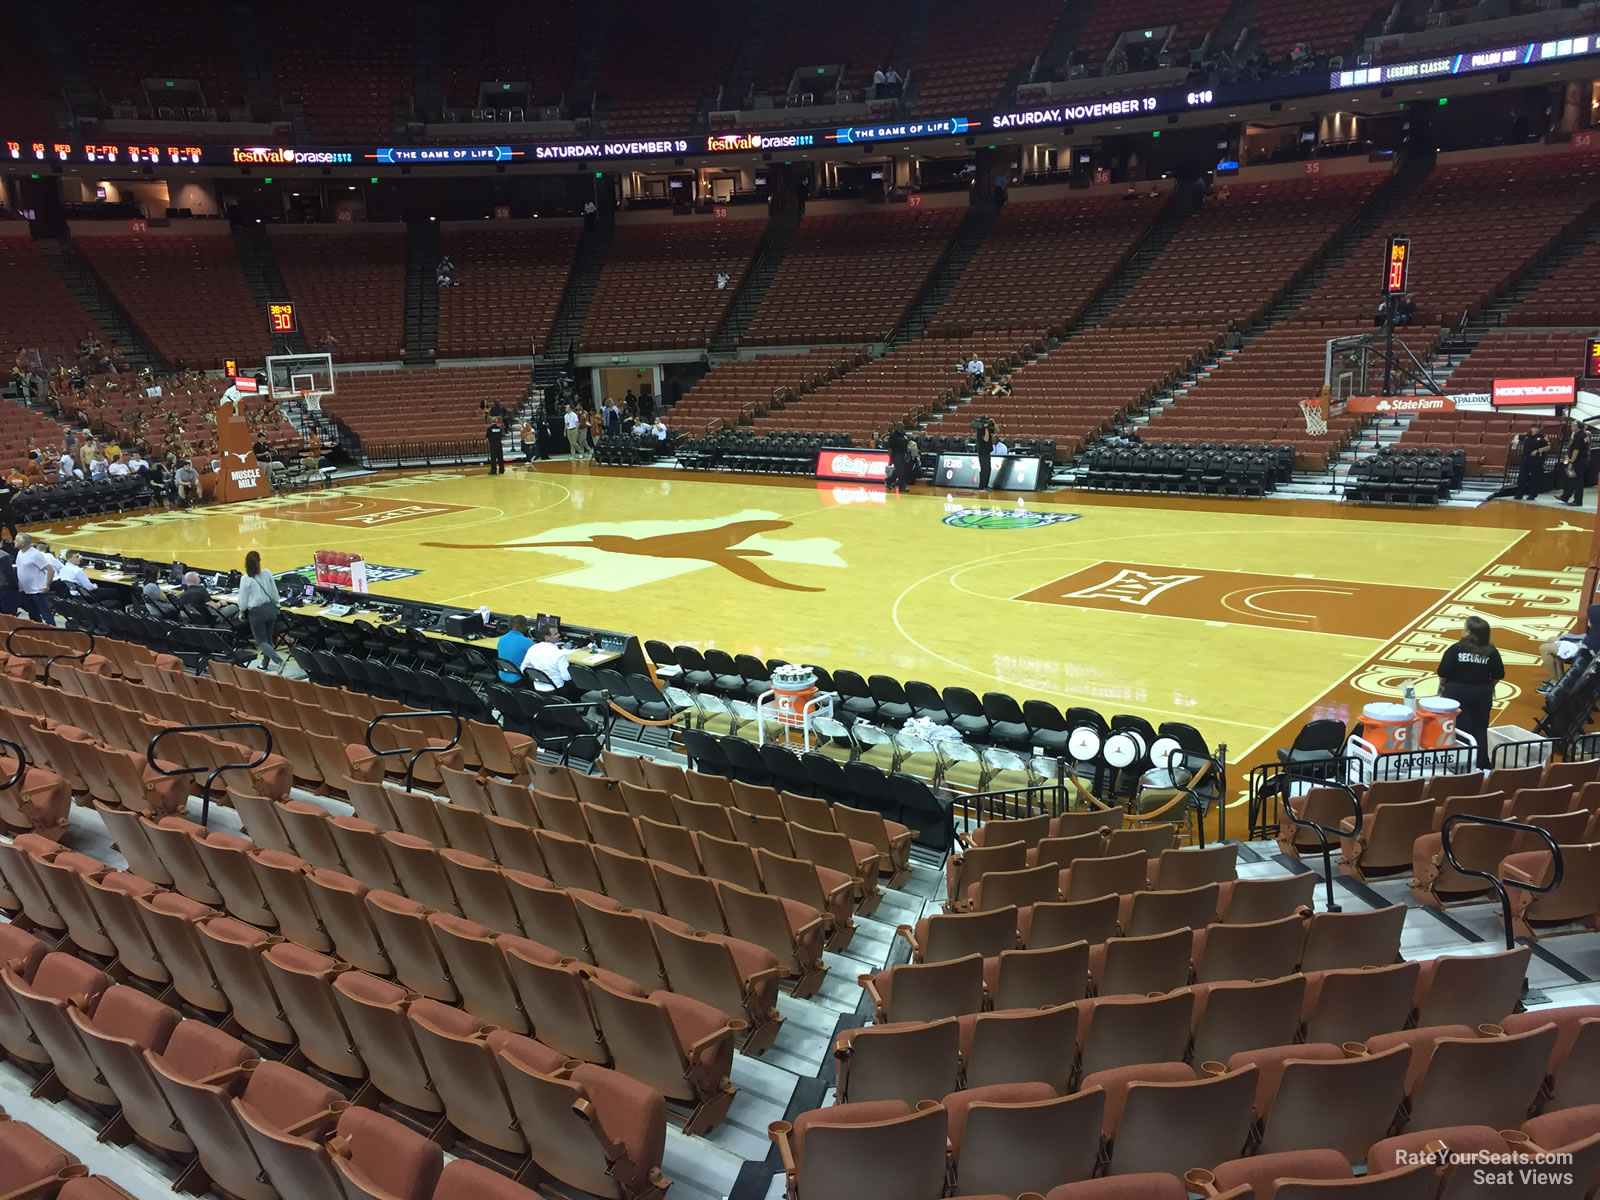 Seat View for Frank Erwin Center Section 22, Row 17